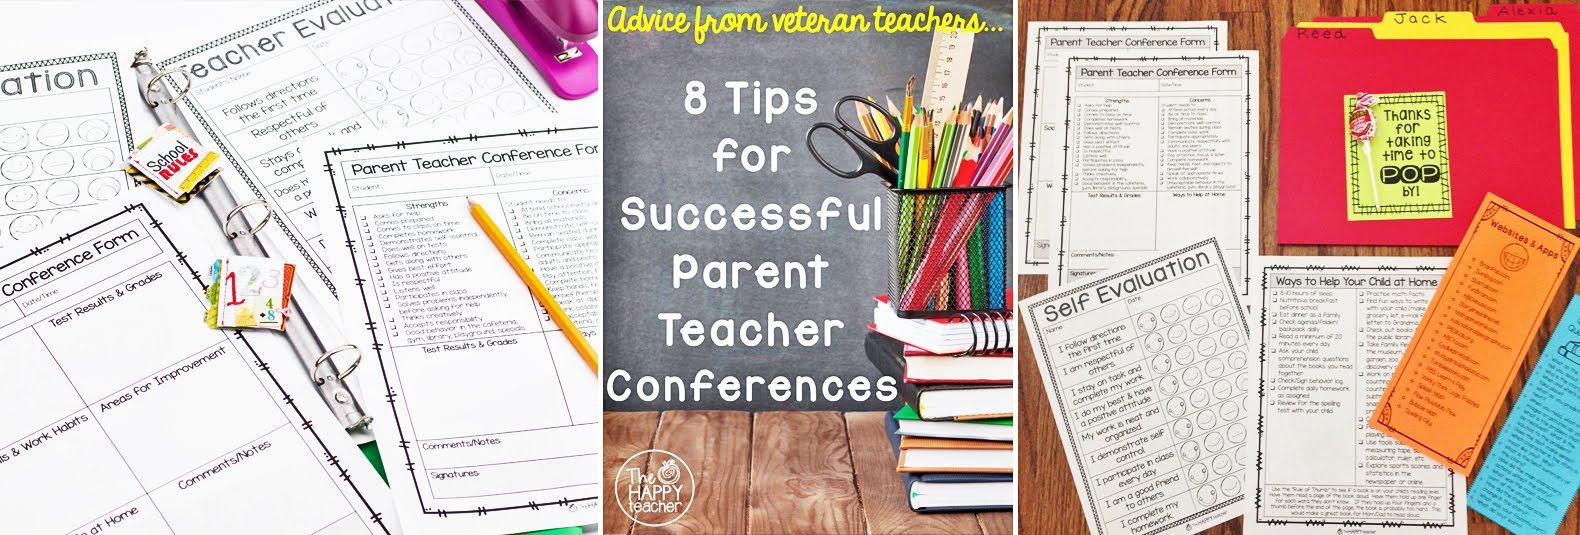 Tips For Successful Parent Teacher >> Parent Teacher Conferences 8 More Tips For Successful